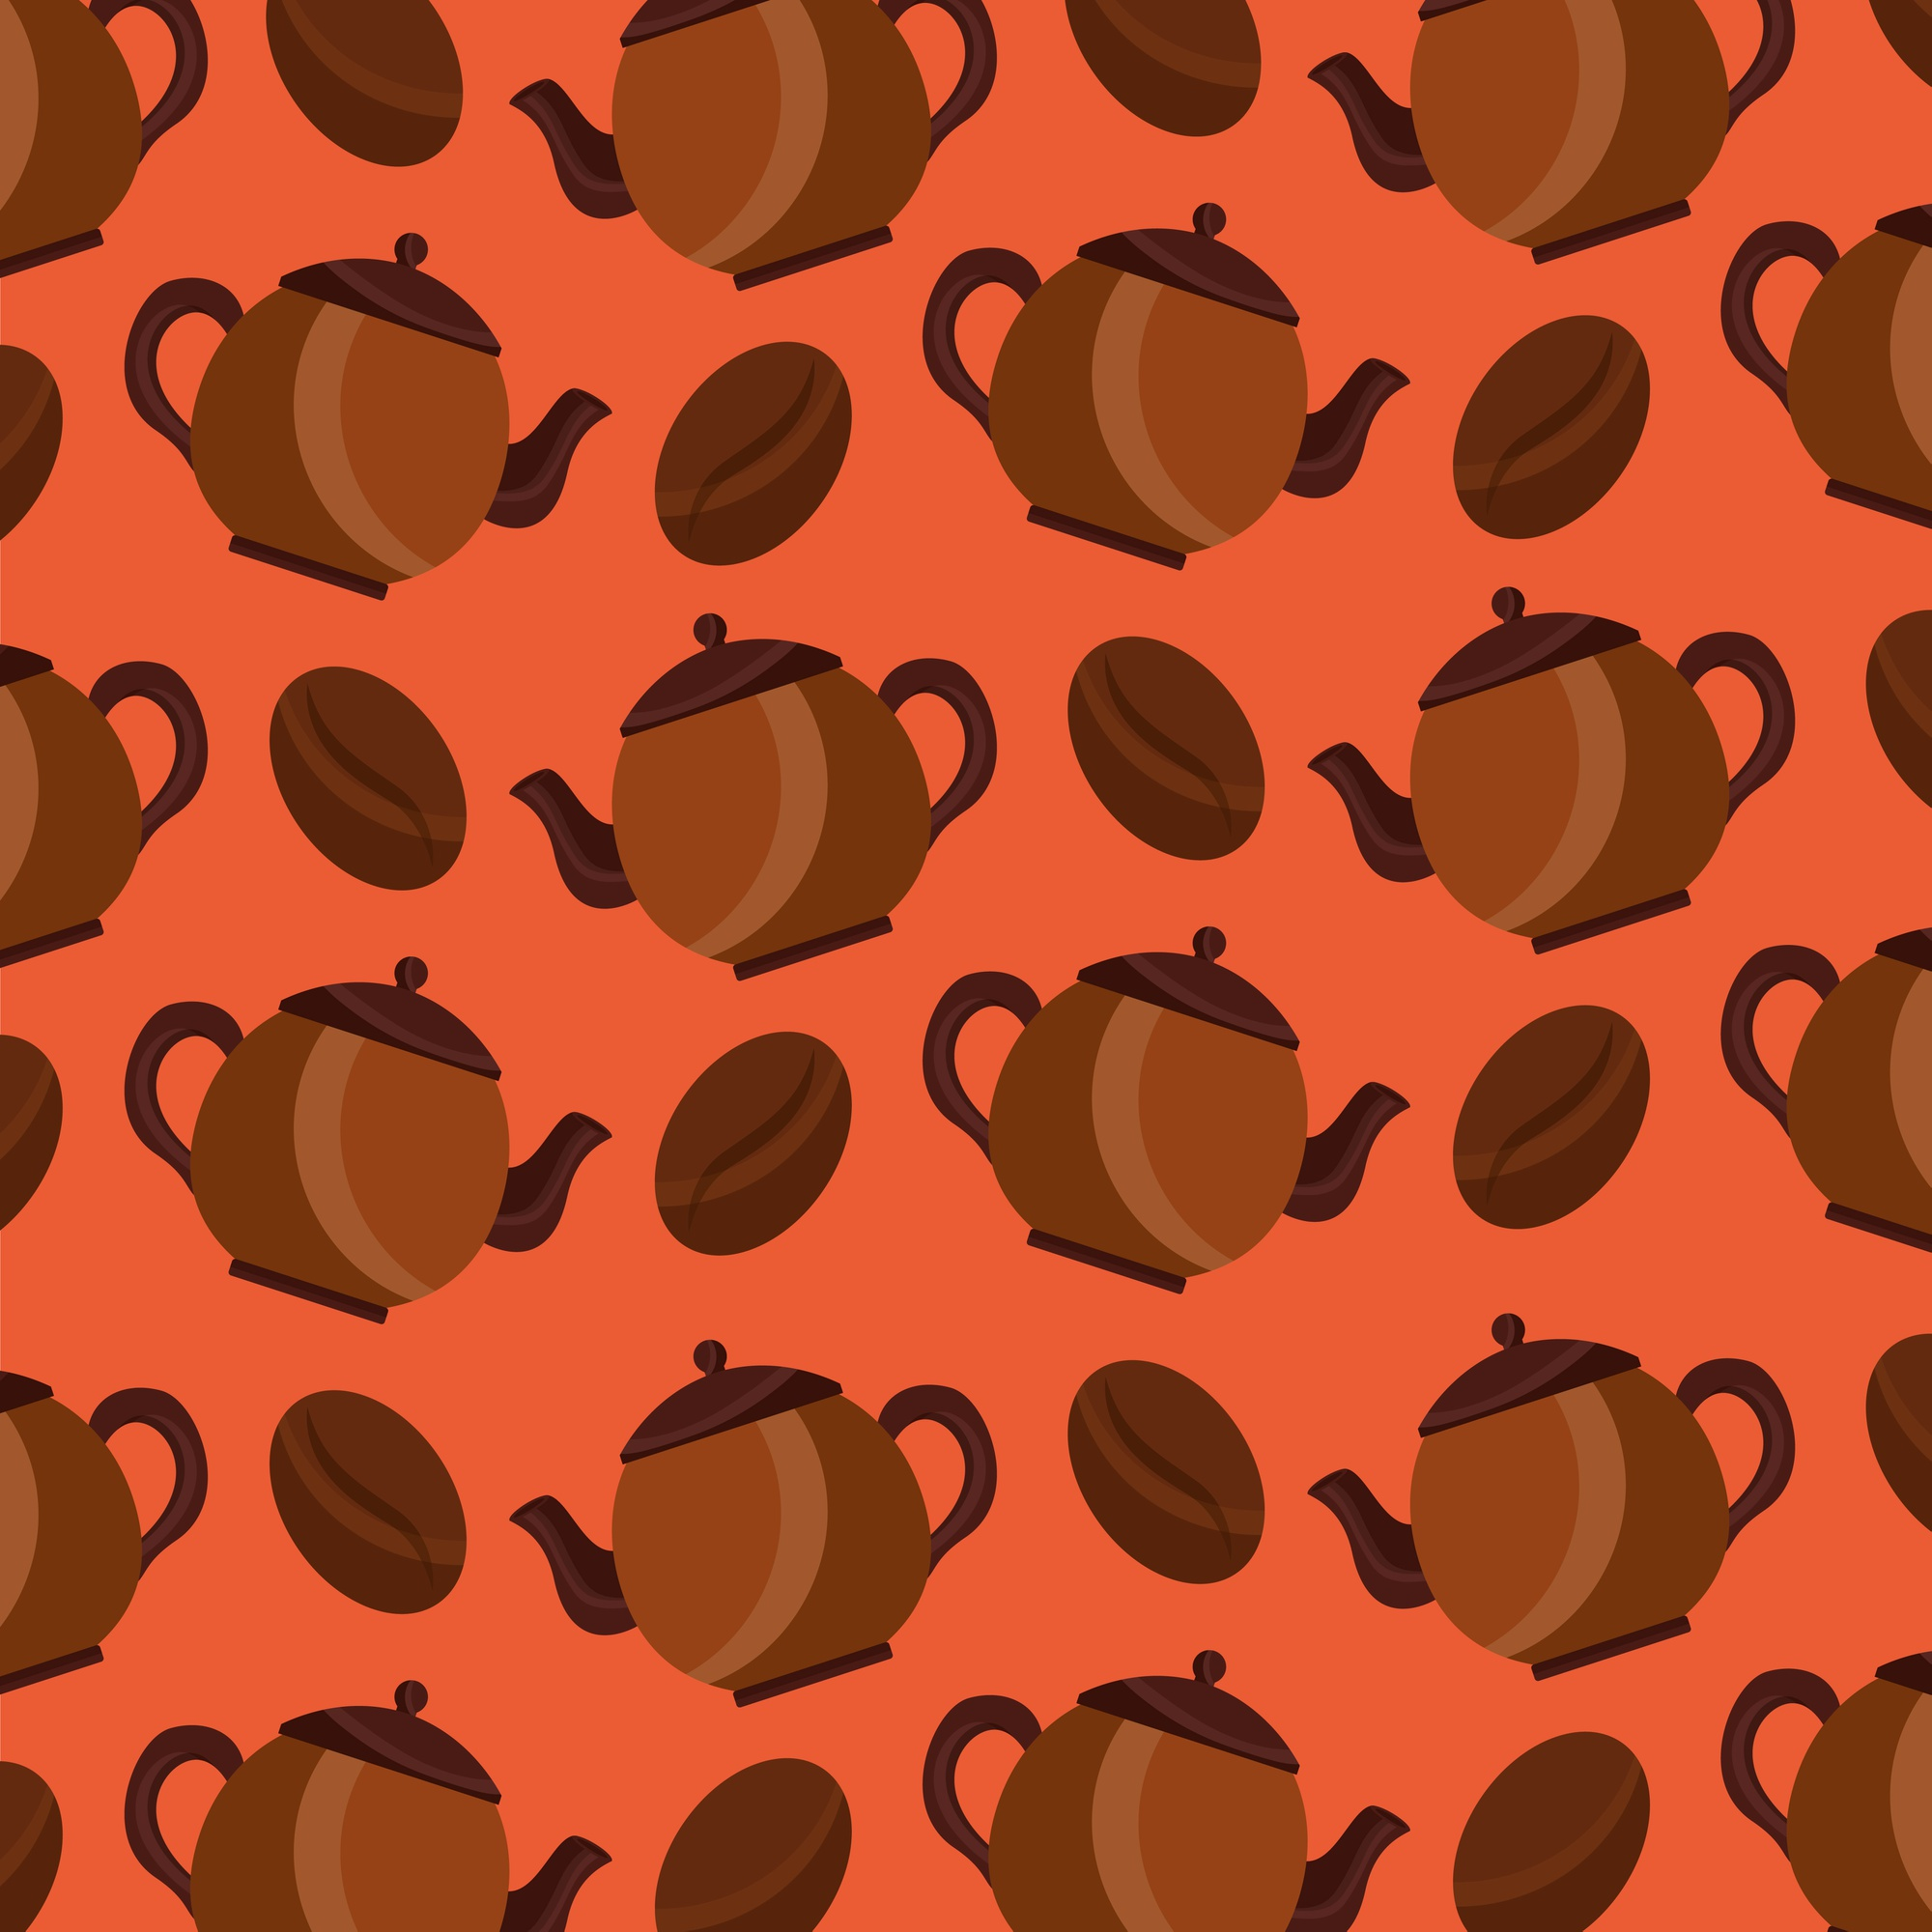 Coffee maker and seeds grain aroma background